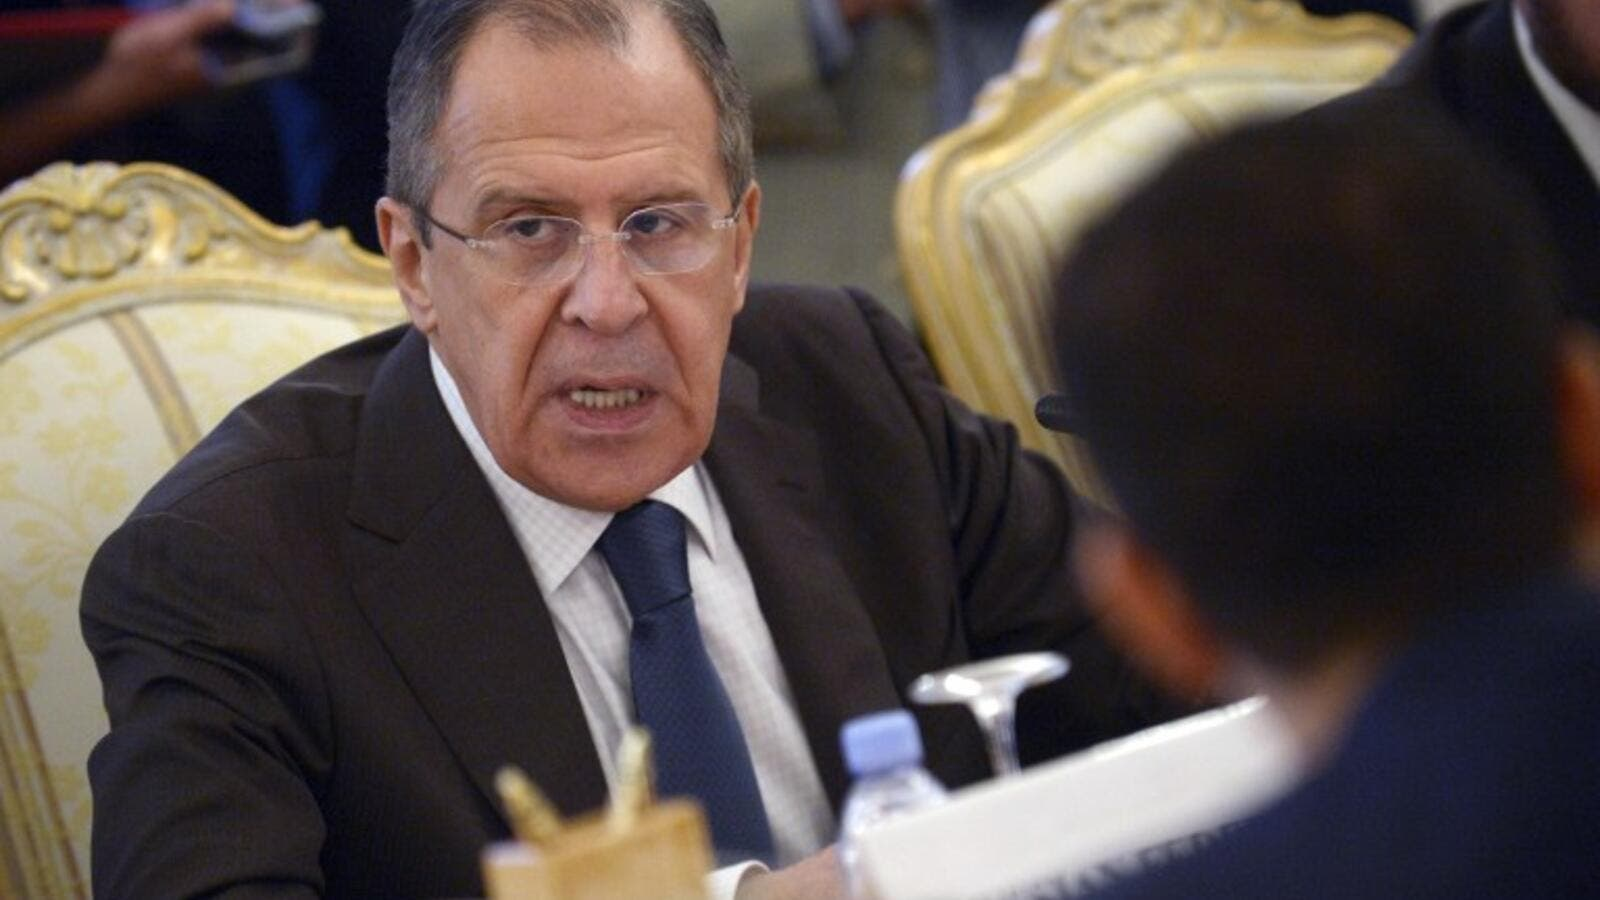 Russian Foreign Minister Sergei Lavrov speaks during the Arab League Forum in Moscow, on February 26, 2016. (AFP/Natalia Kolesnikova)